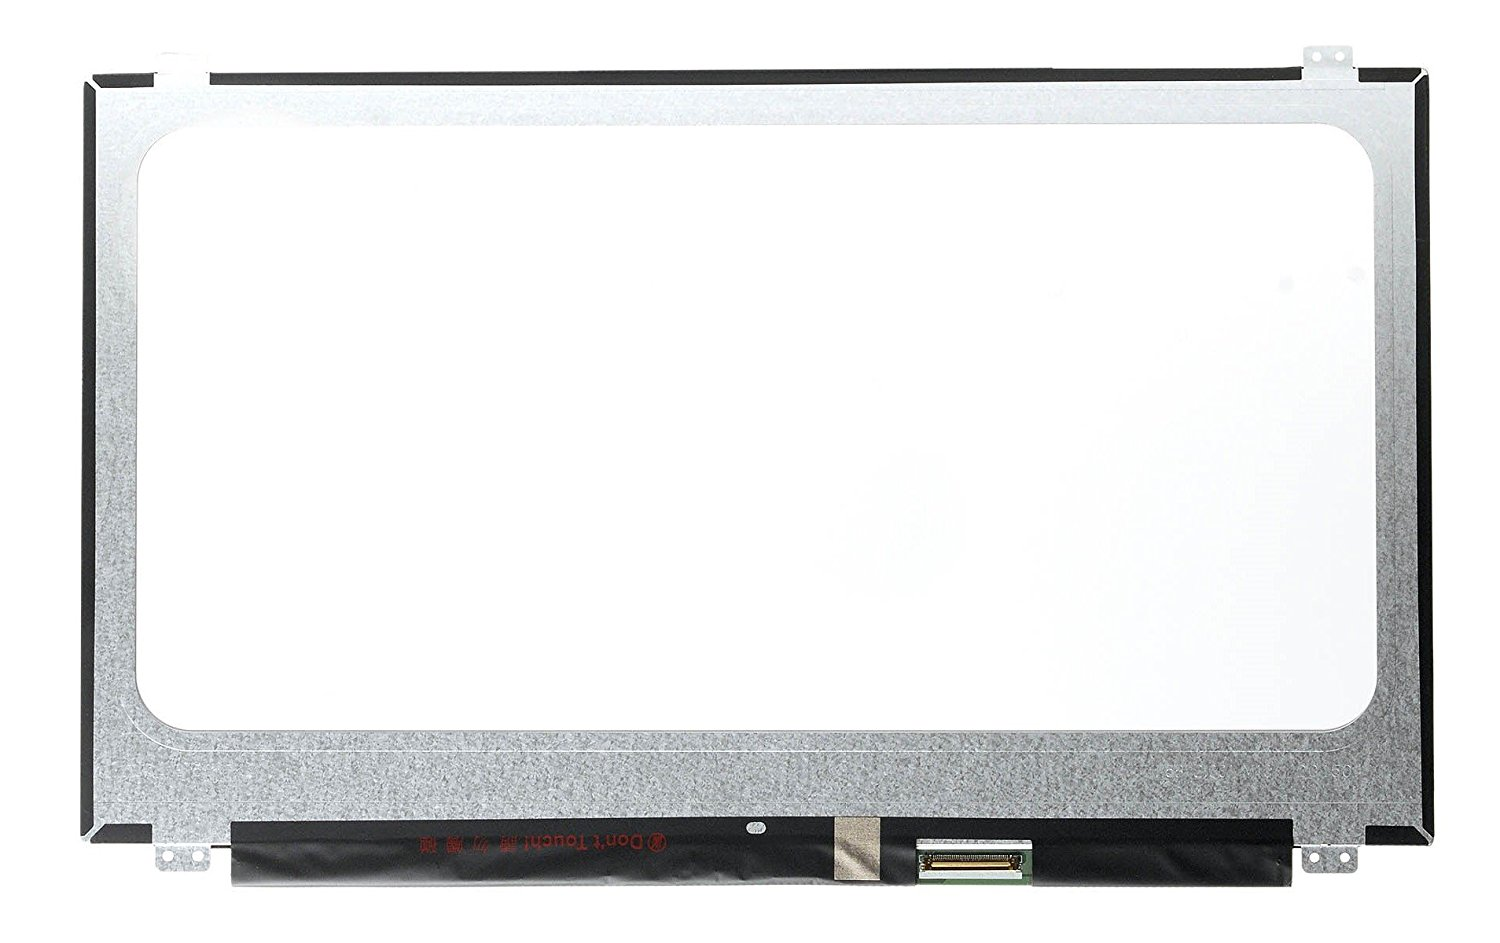 LTN156AR36-001 For Dell P51F004 15.6 LED LCD Touch Screen Panel Display WXGA for dell inspiron 3558 15 6 led lcd touch screen display wxga ltn156ar36 001